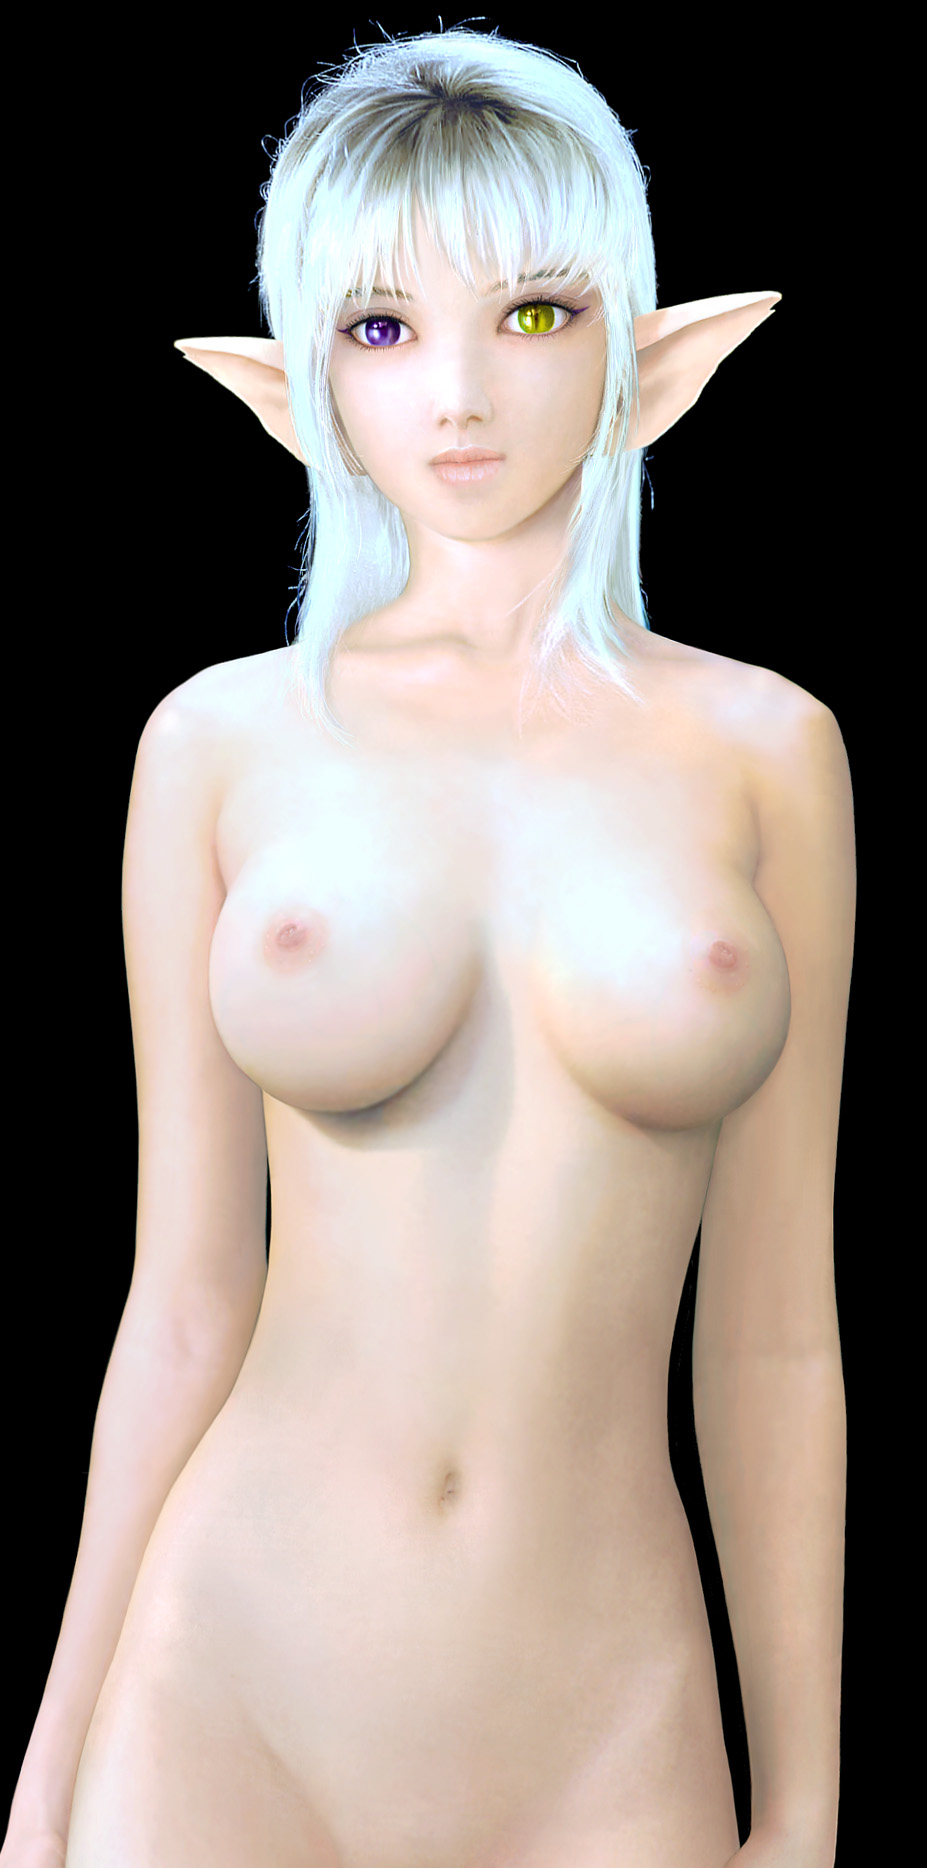 Elf women nude